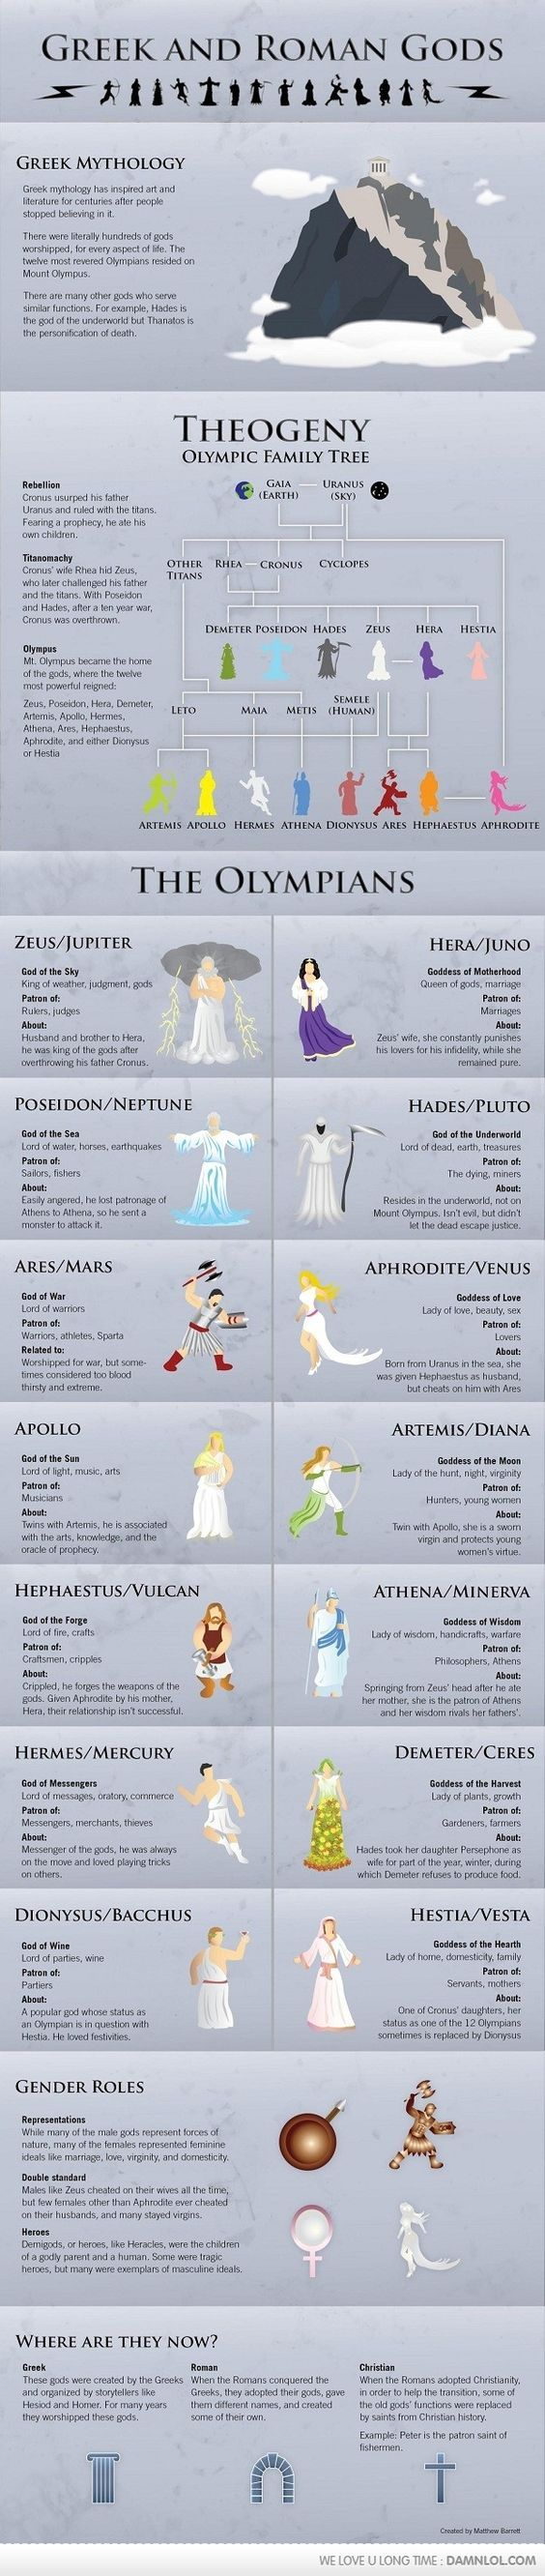 Historiebloggen.nu Greek And Romans Gods & Goddesses - familial chart, histories, descriptions, aliases, etc.